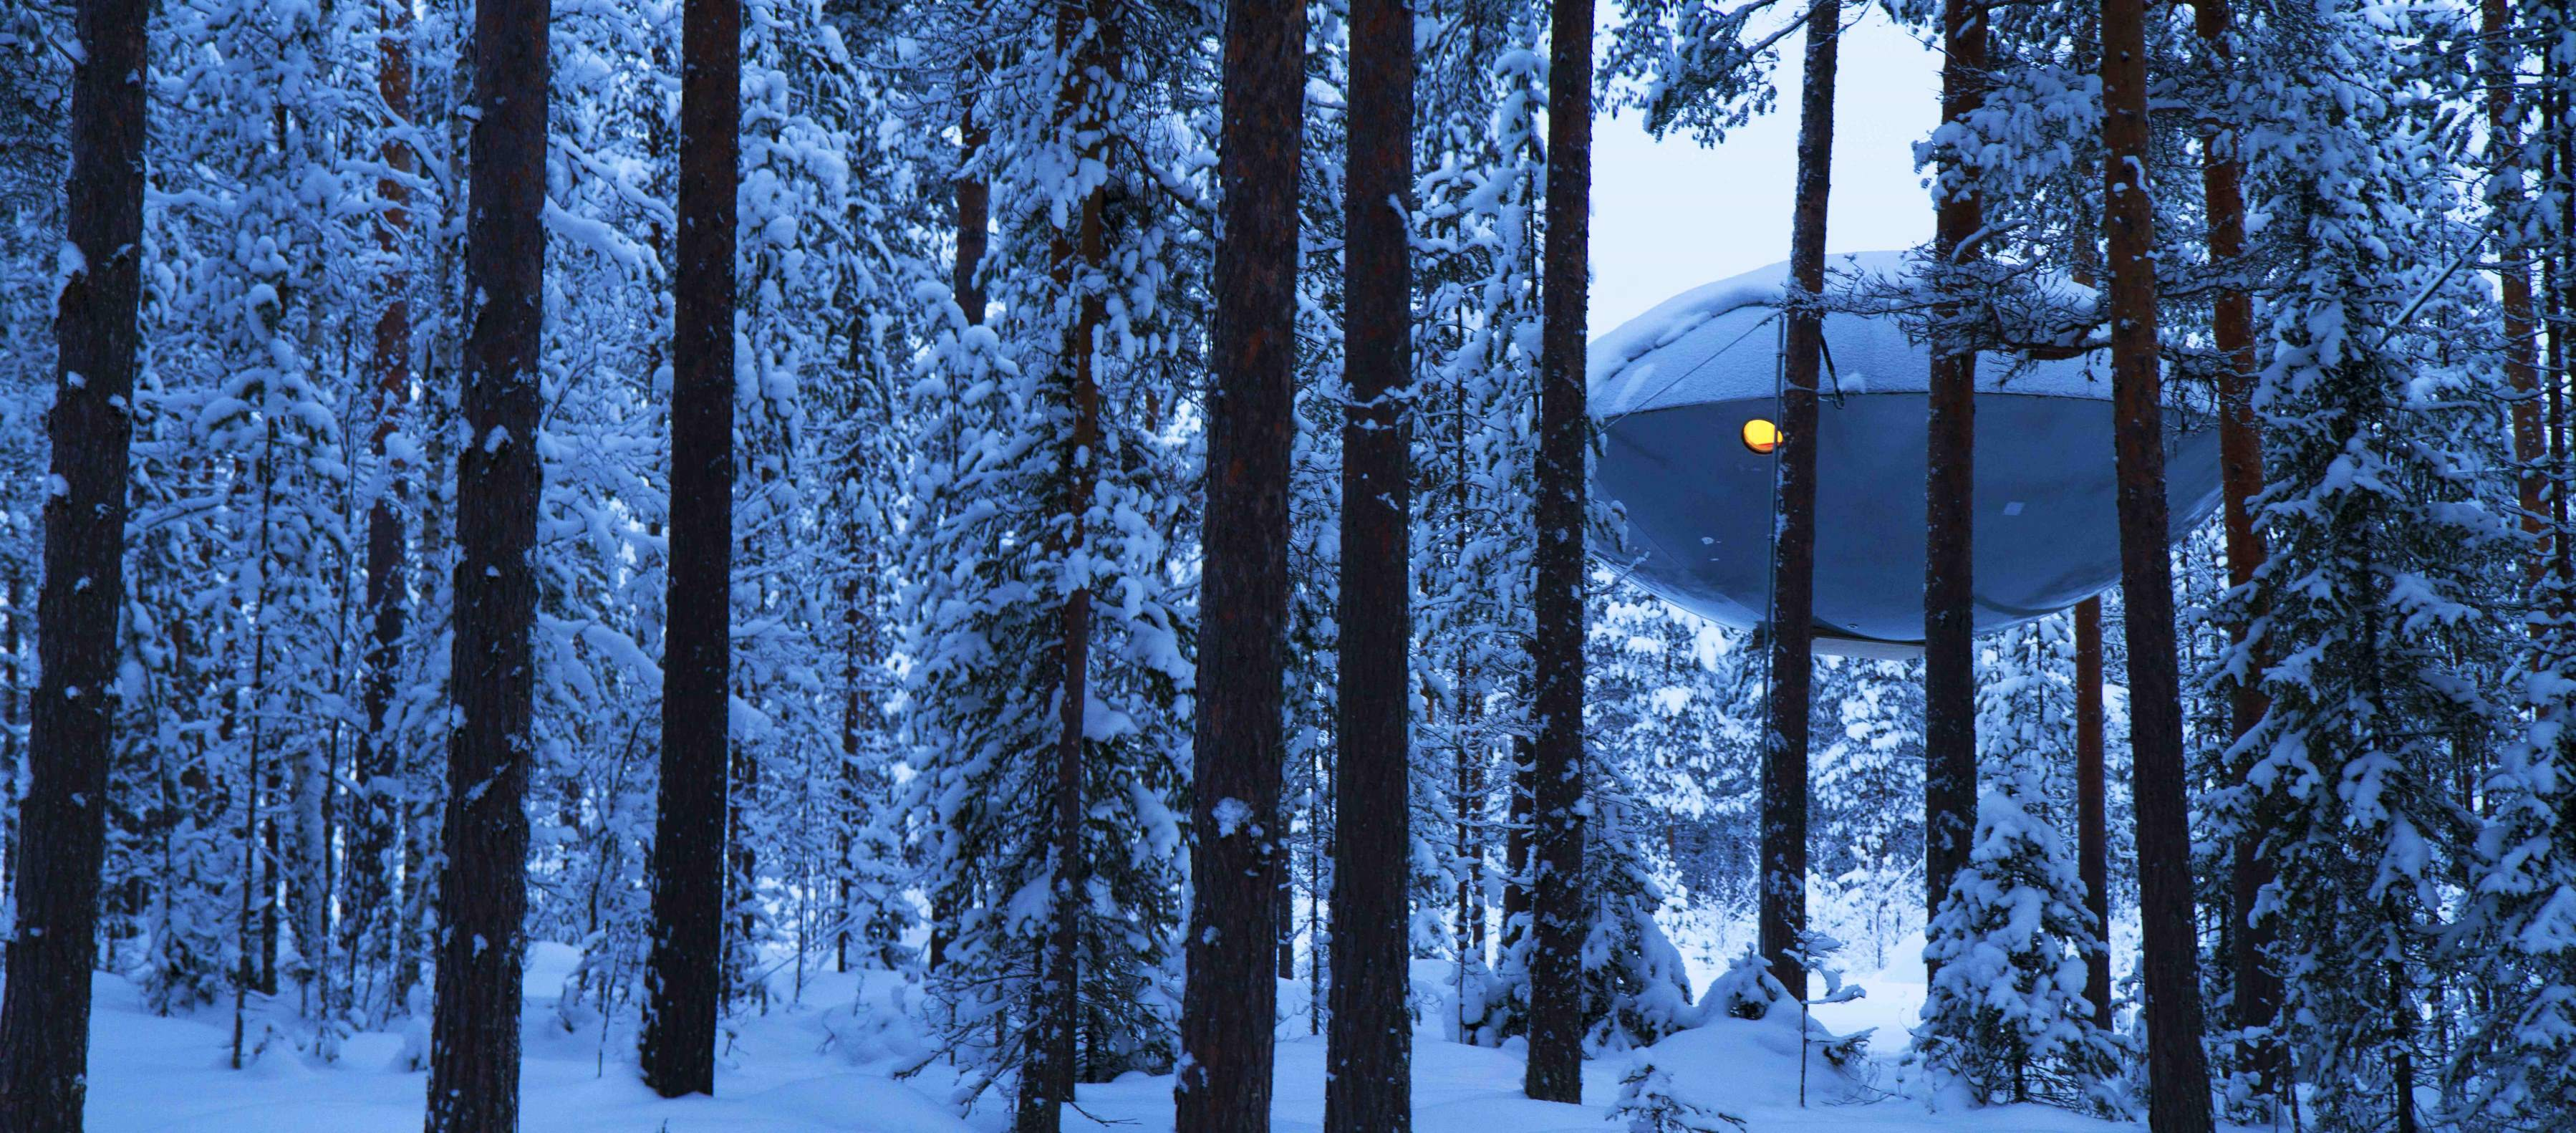 Nest in Sweden's Treehotel this winter